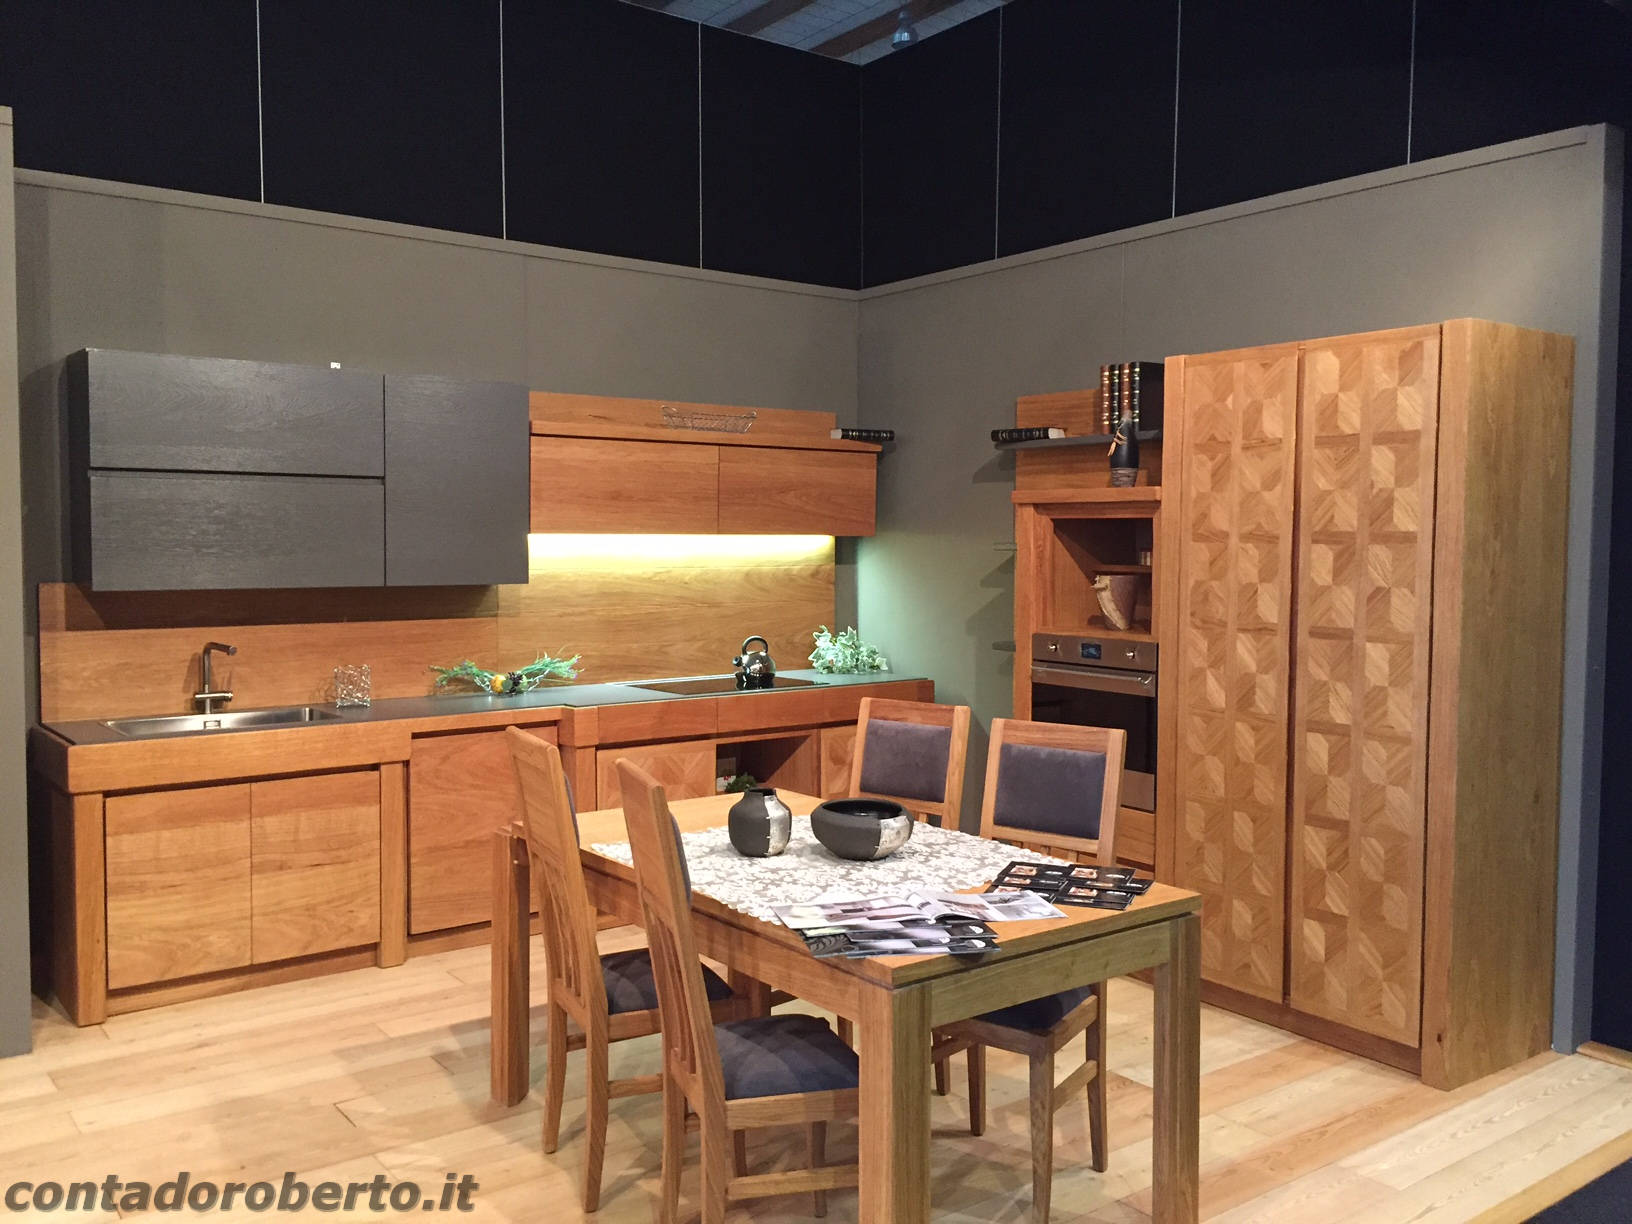 https://www.contadoroberto.it/cms-contents/uploads/cucina-moderna-in-rovere-naturale-manerba.jpg